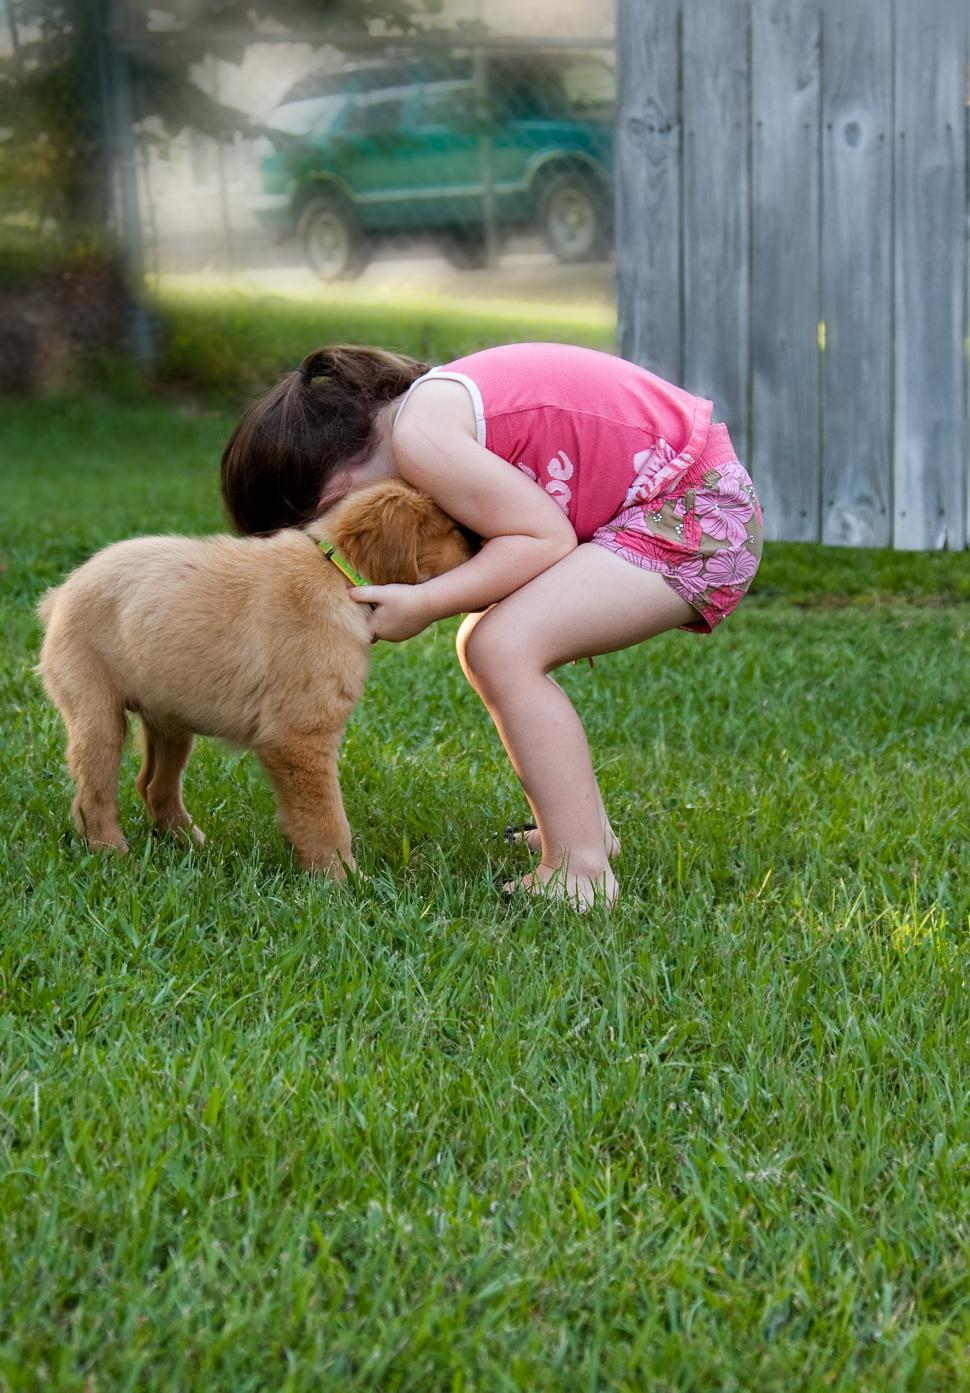 Download Free Stock Photo of Child playing with puppy